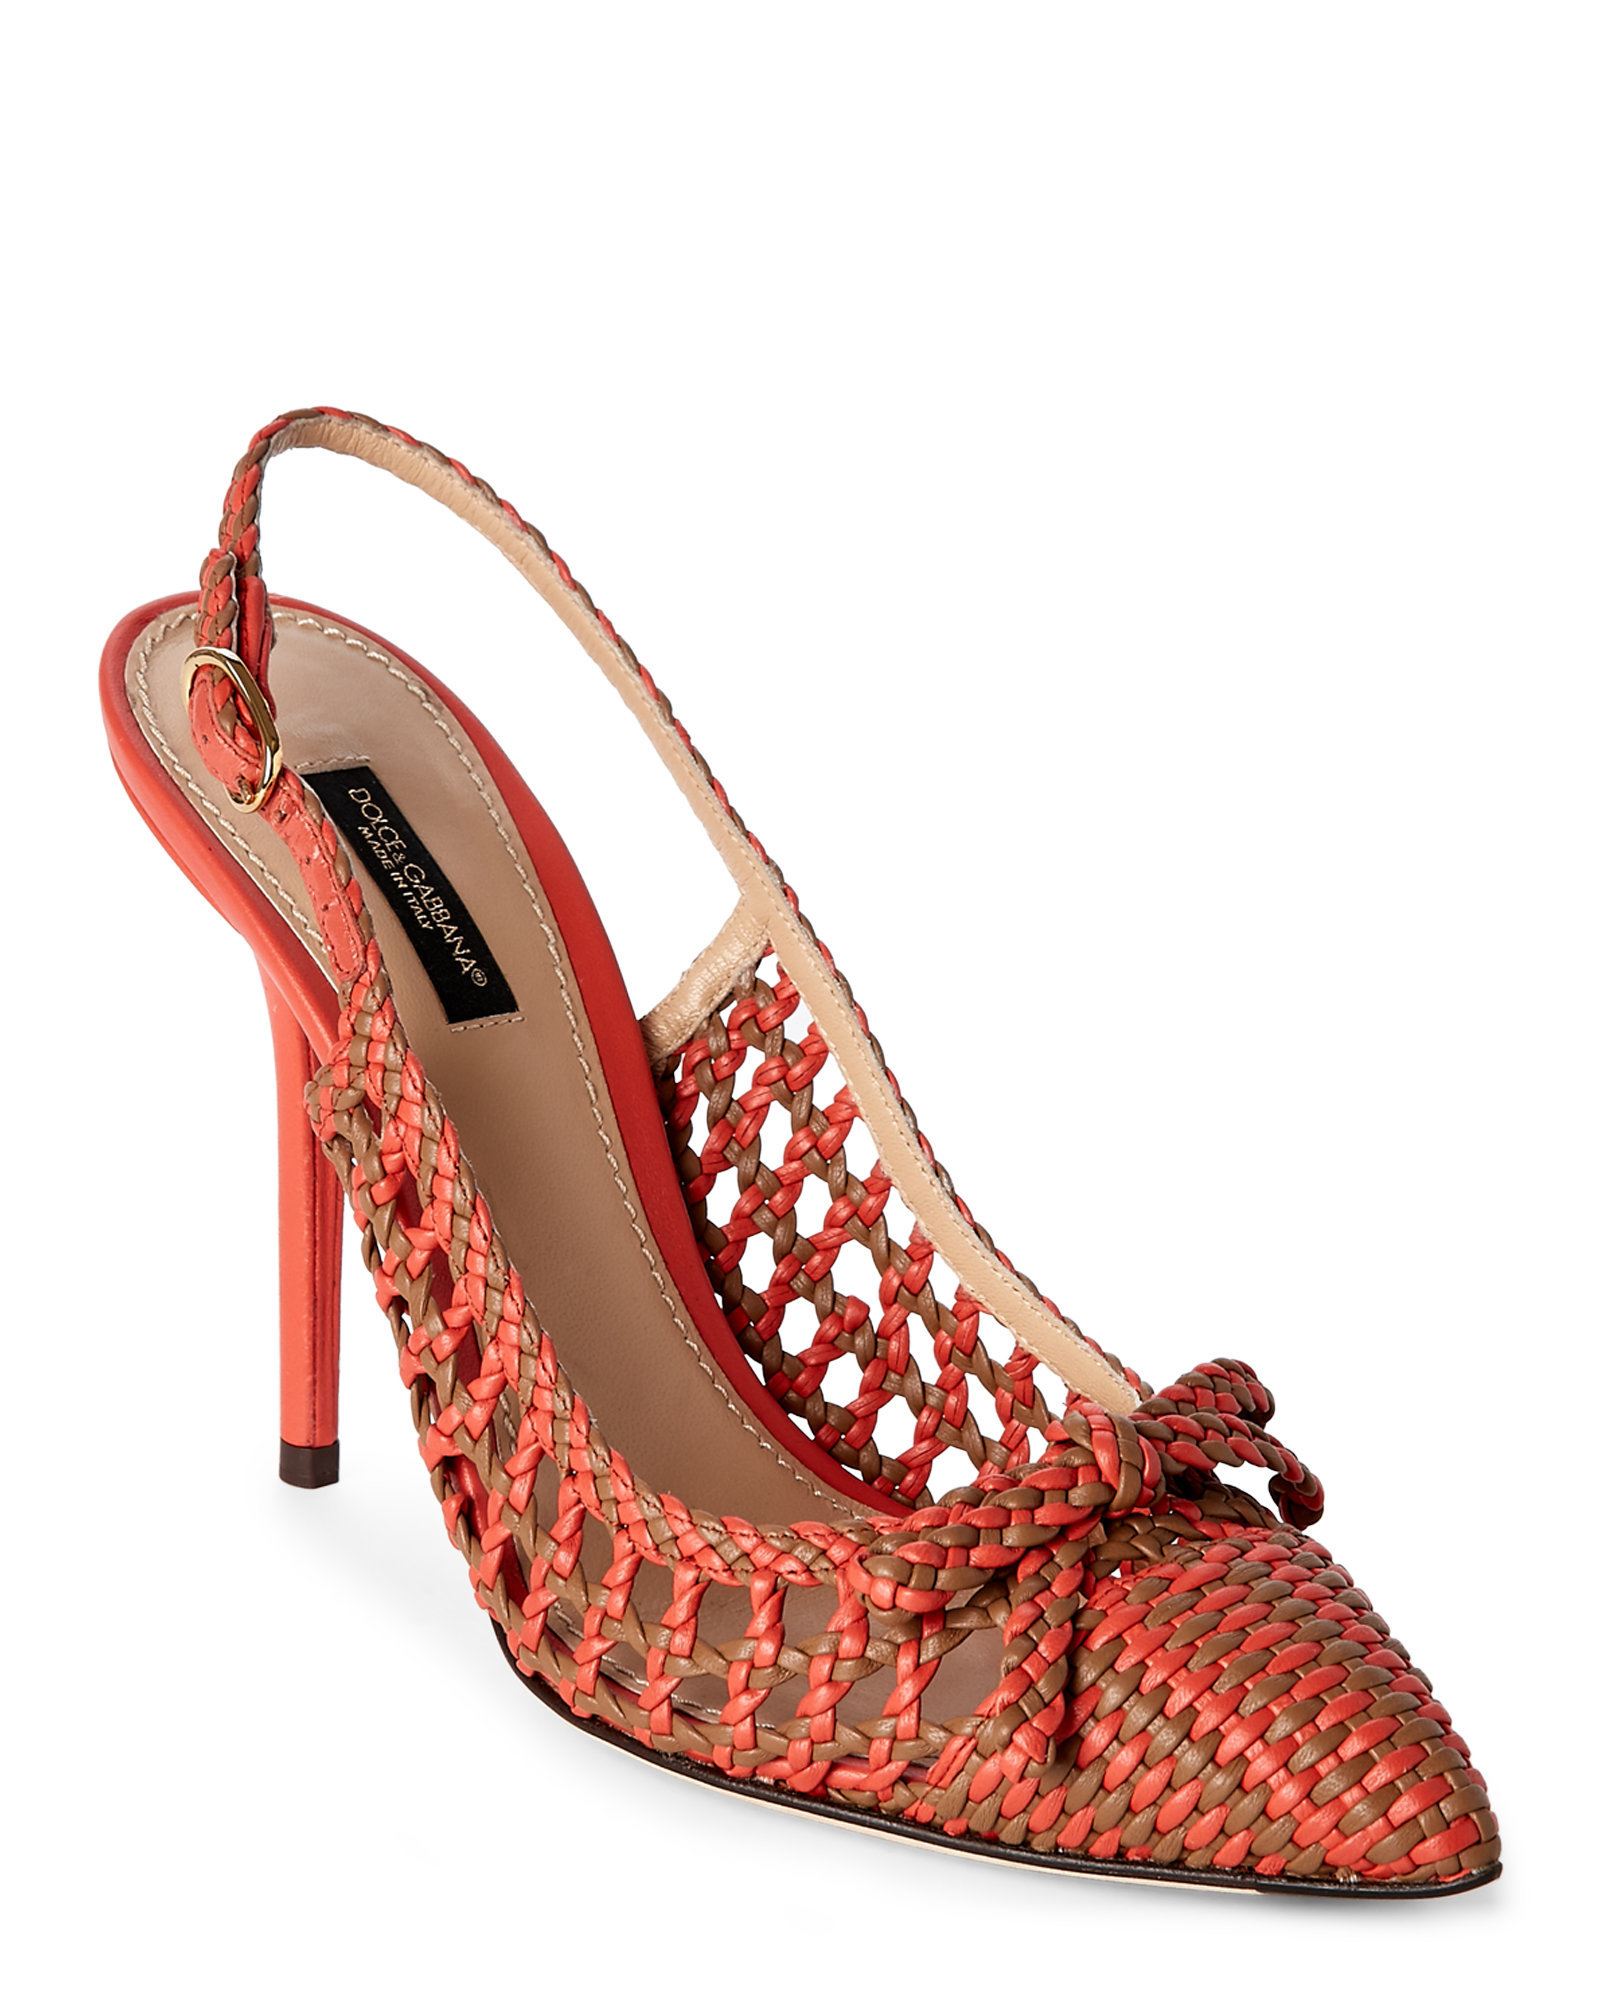 Lyst Dolce Amp Gabbana Woven Leather Bellucci Slingback